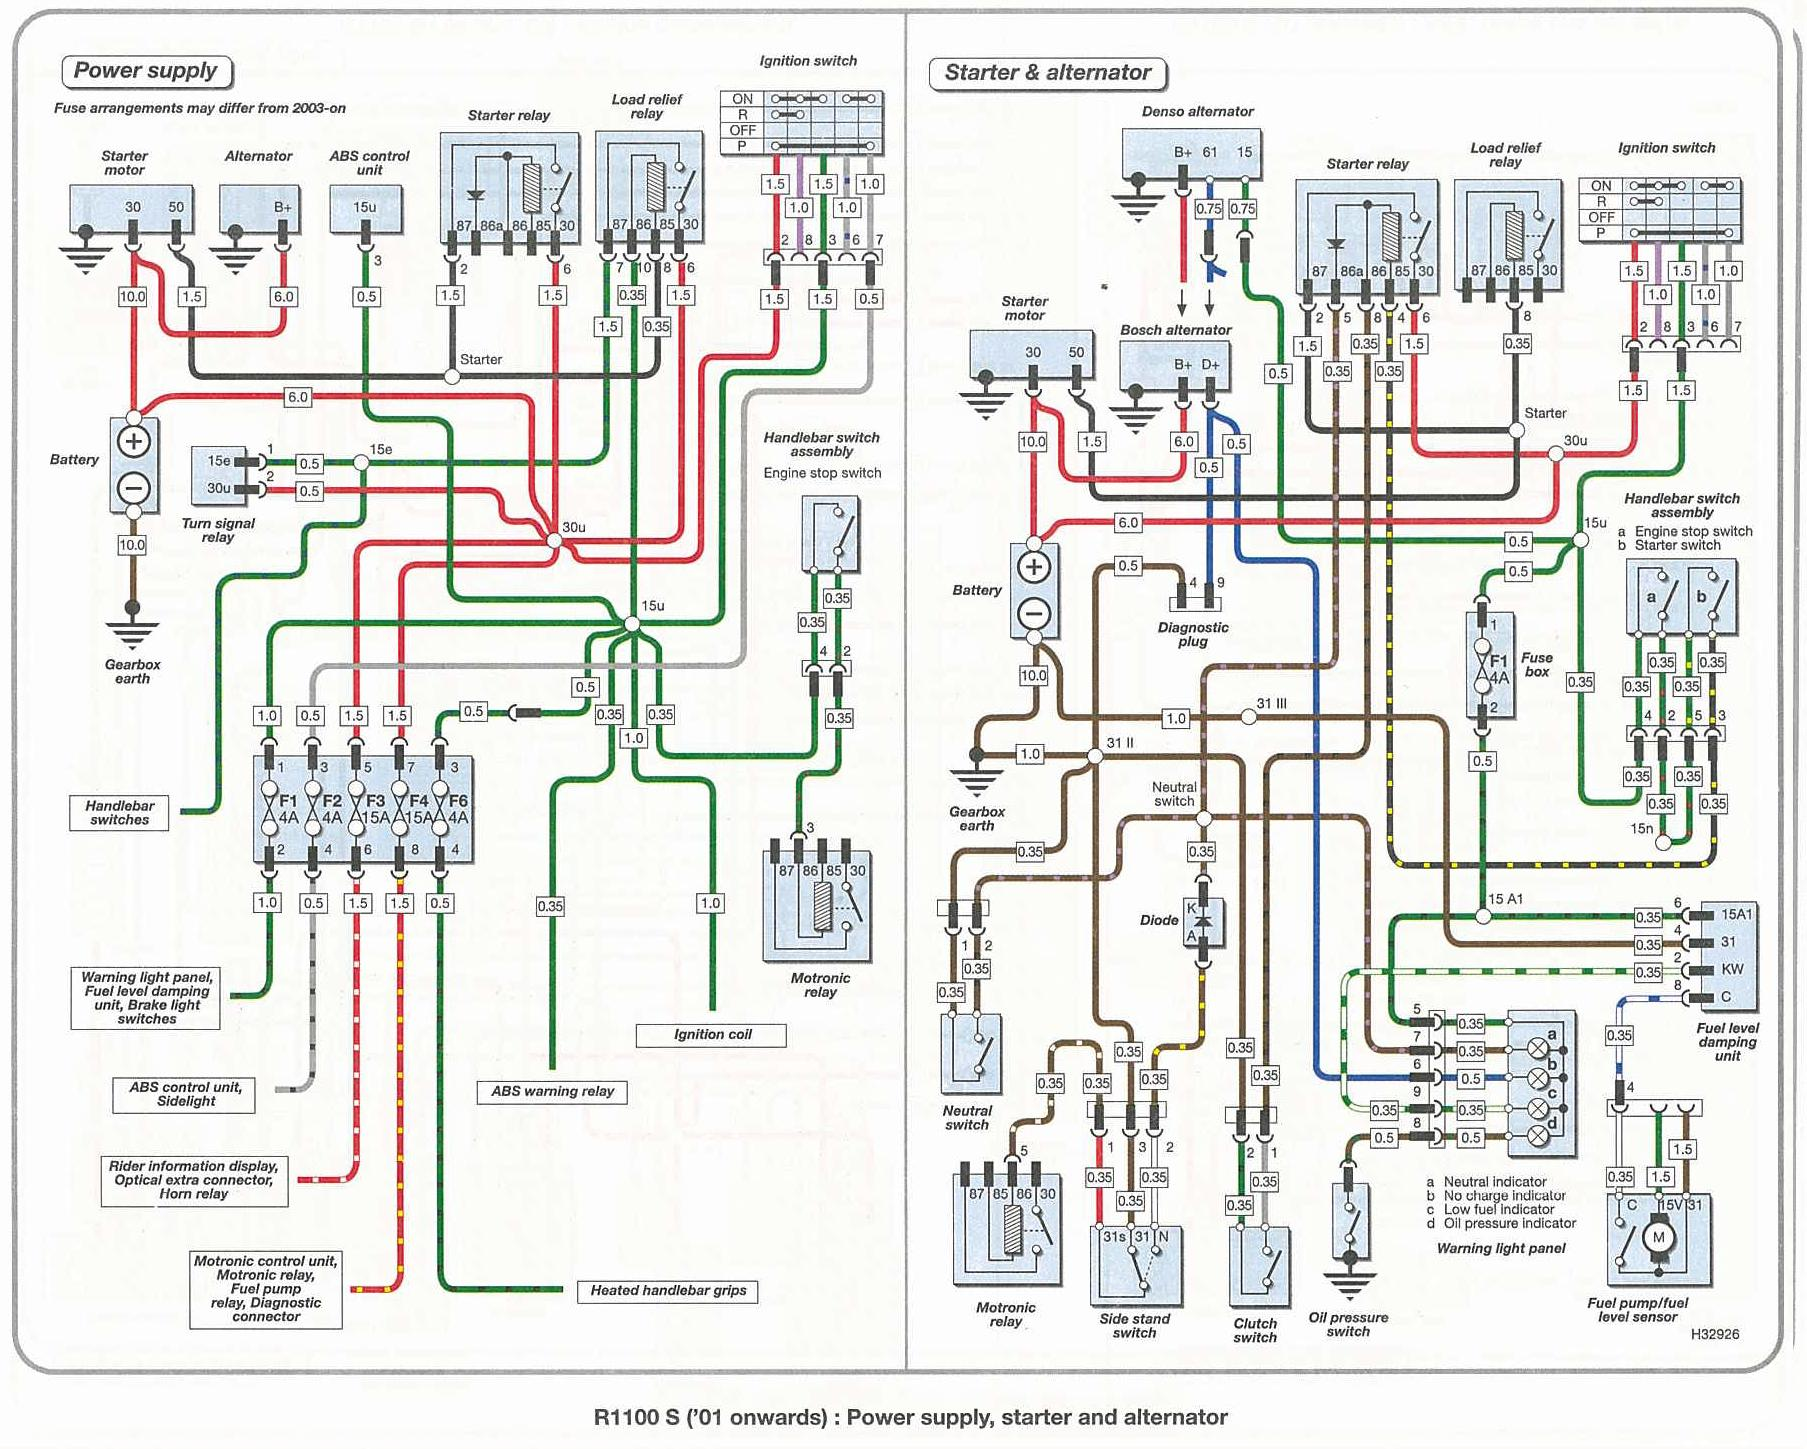 wiring05 bmw r1100s wiring diagrams r1100rt wiring diagram at mifinder.co